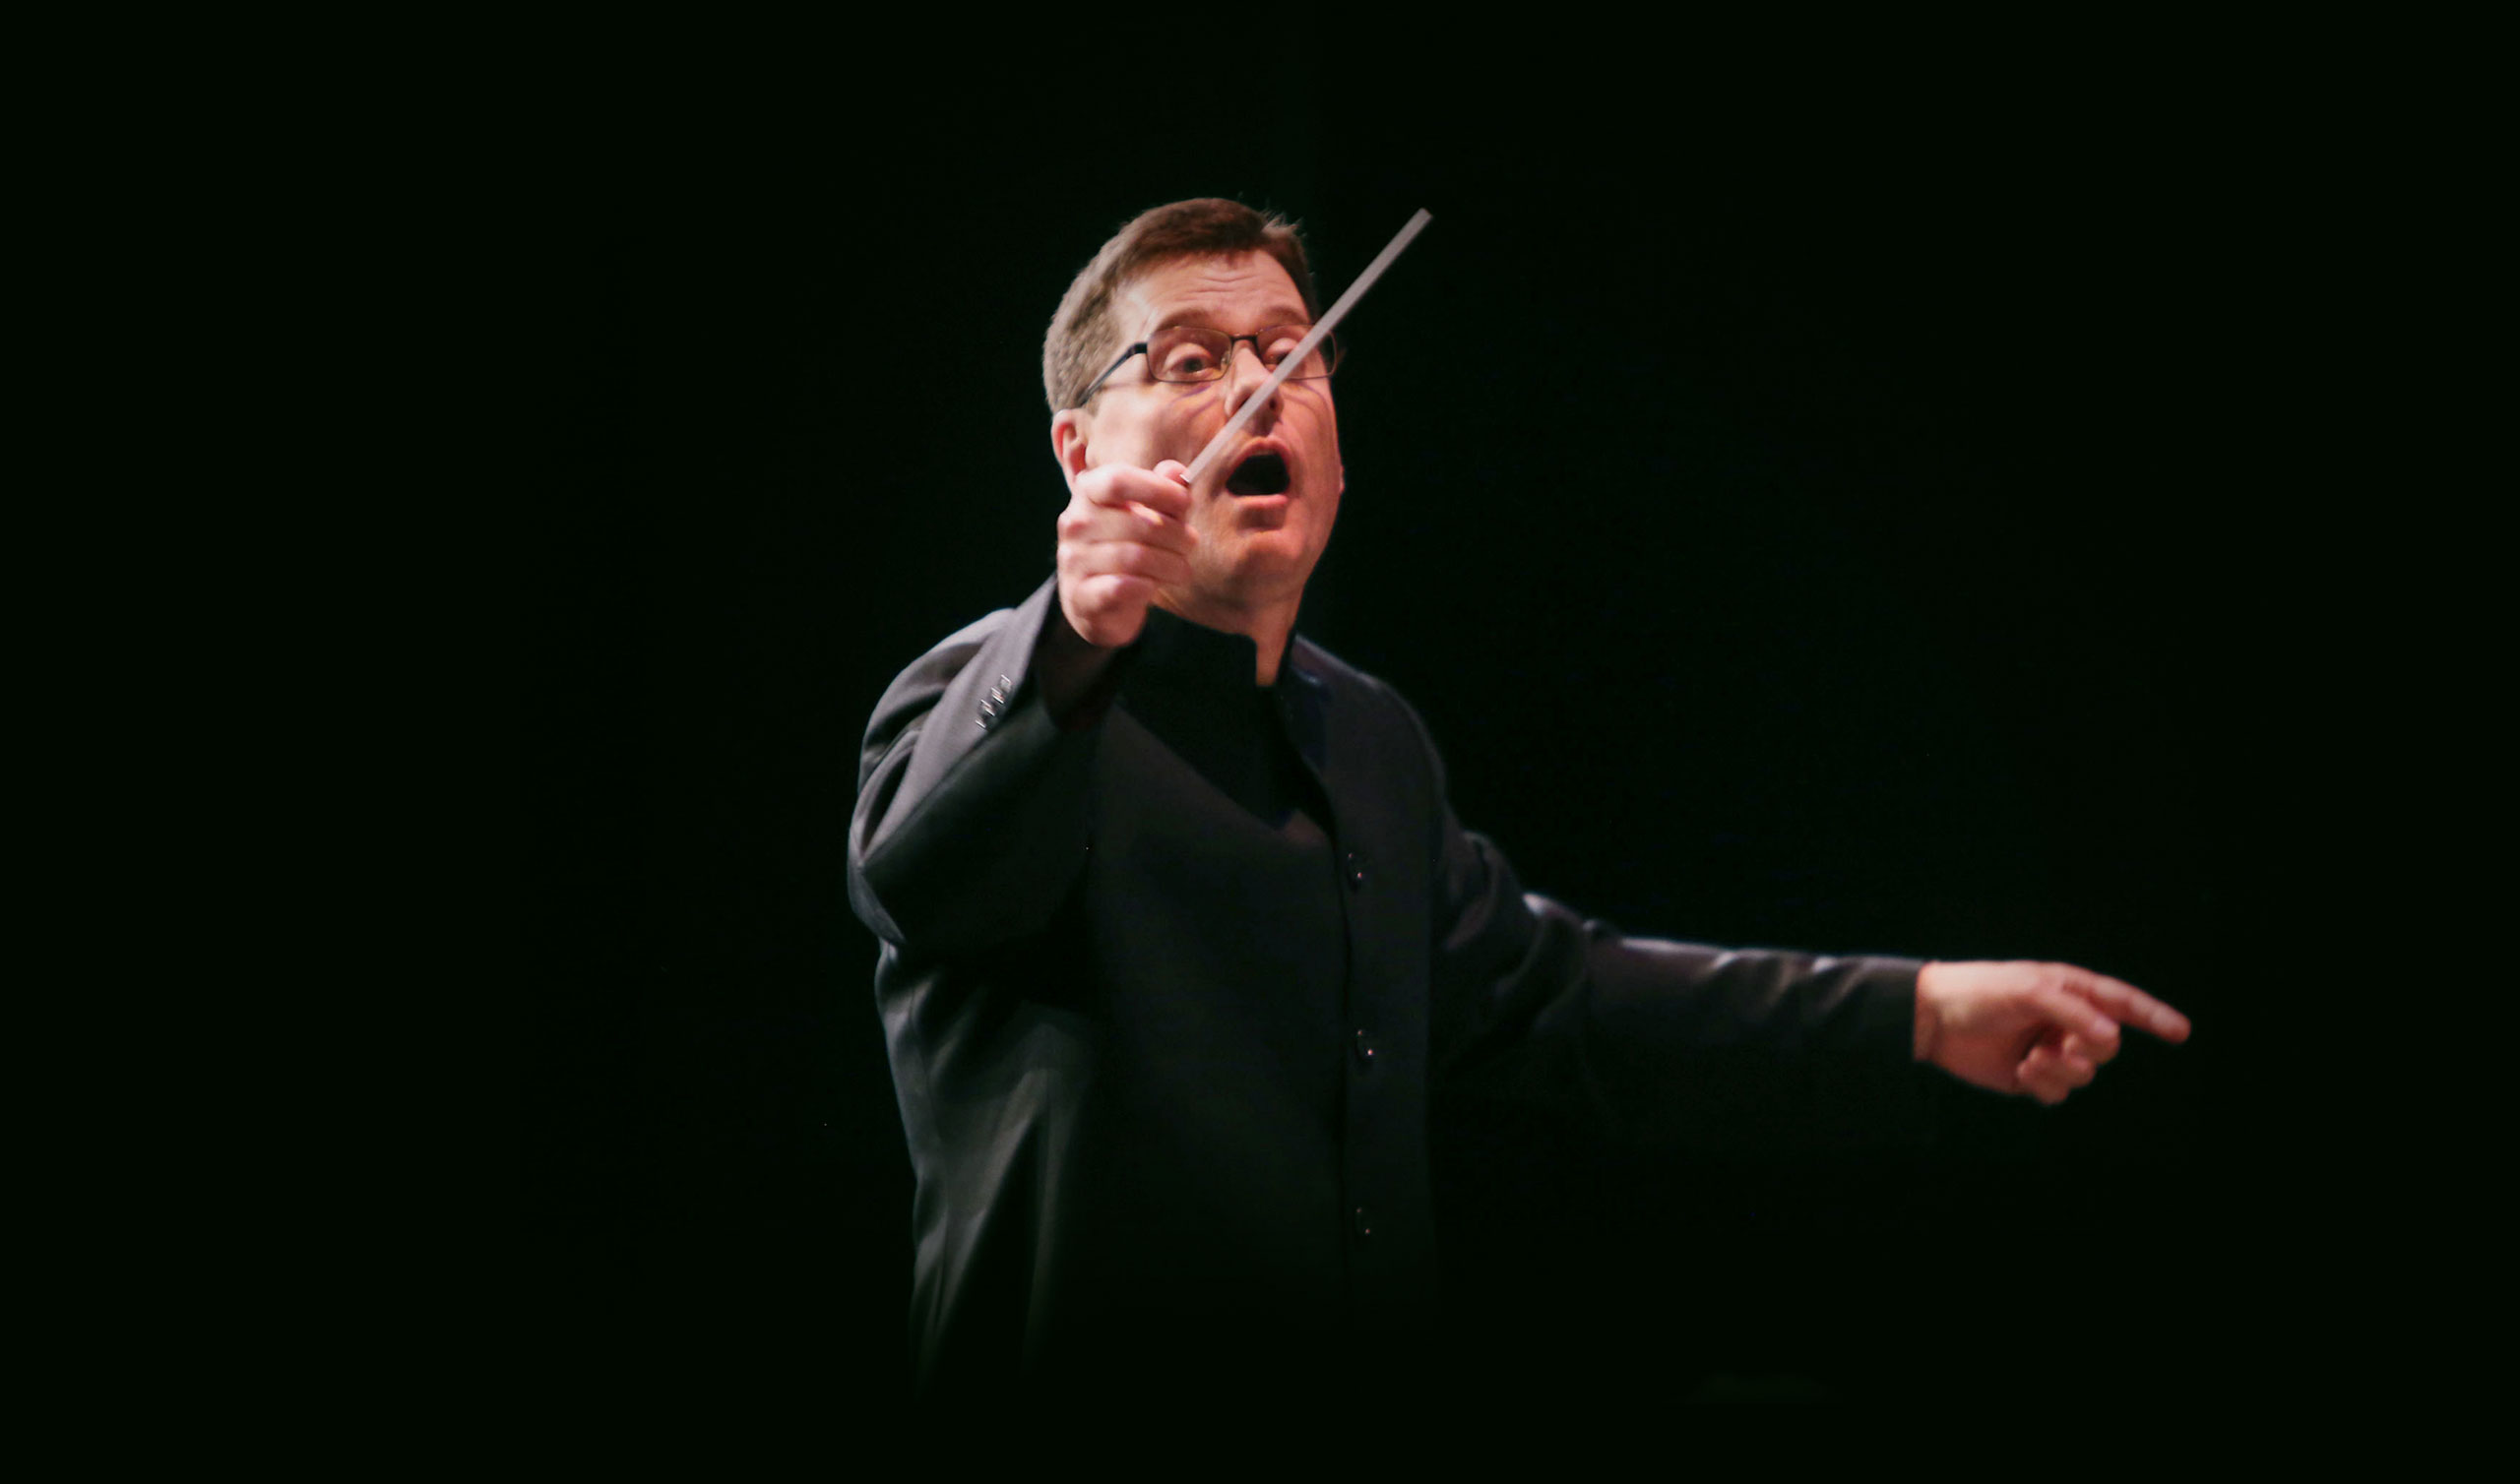 Cal State LA Conductor leading student orchestra in the State Playhouse